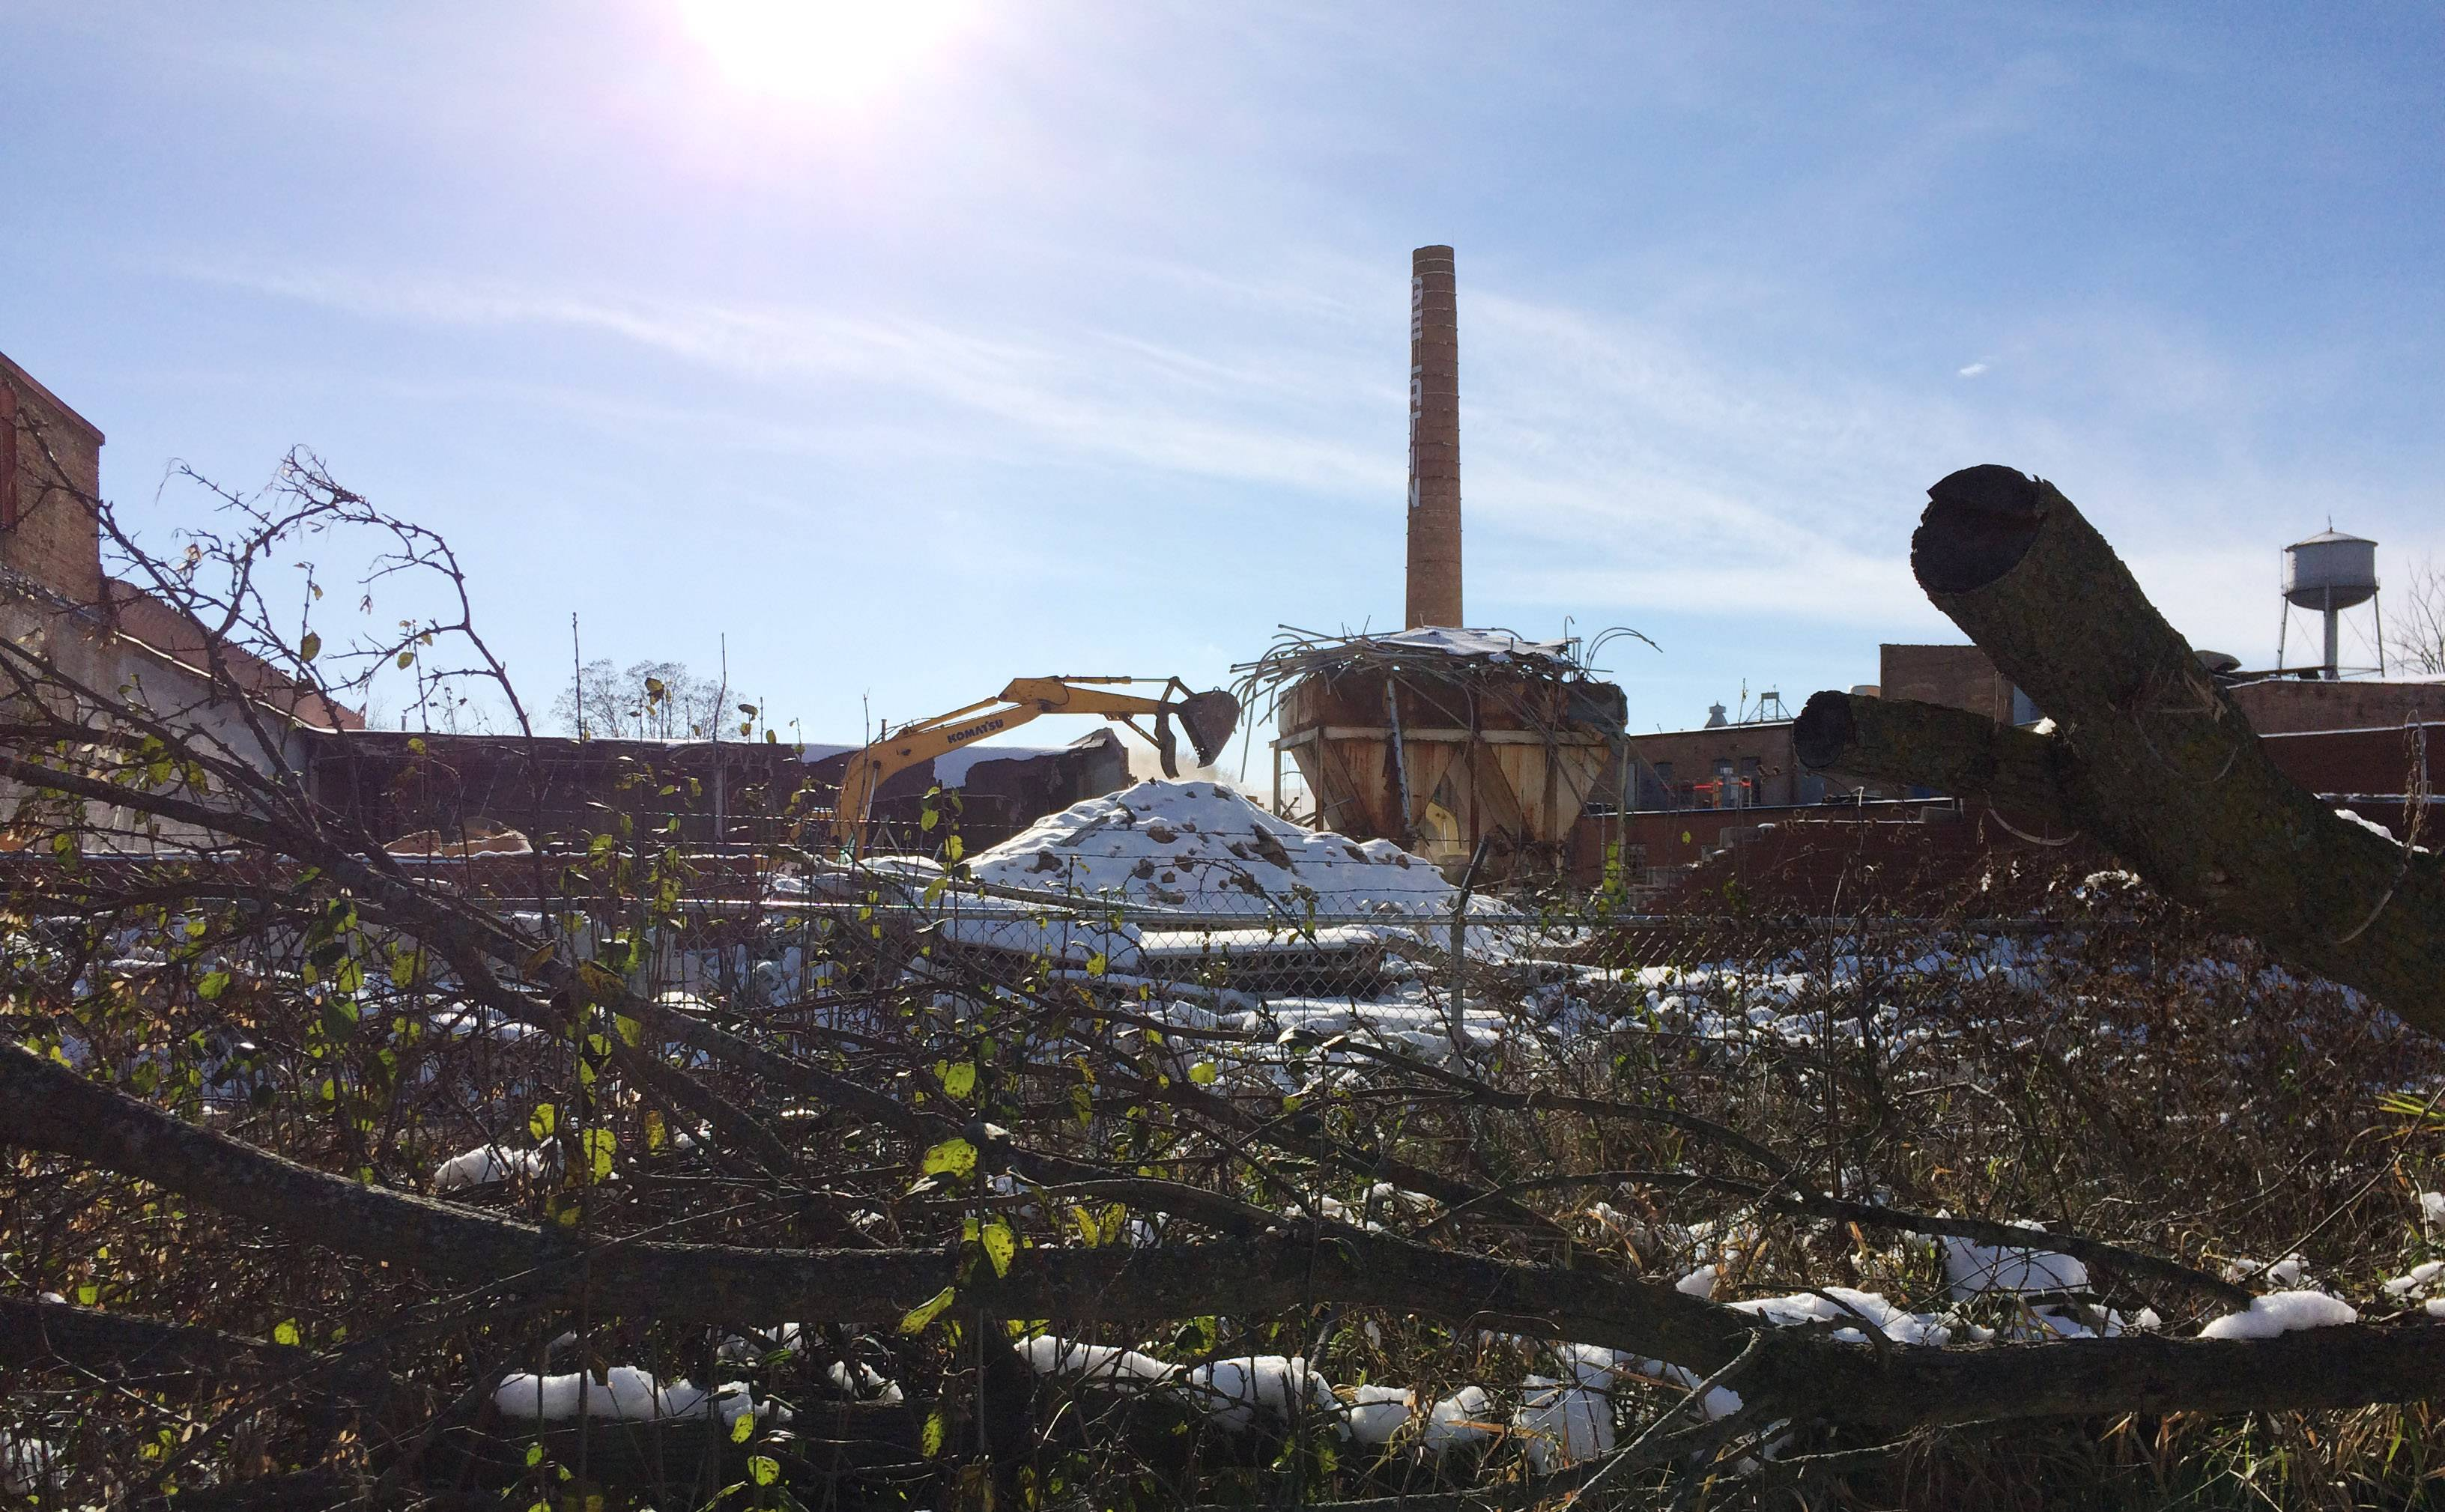 The village of Grayslake unveiled a proposal Friday to convert the space around the iconic Grayslake Gelatin Co. smokestack into a new park.